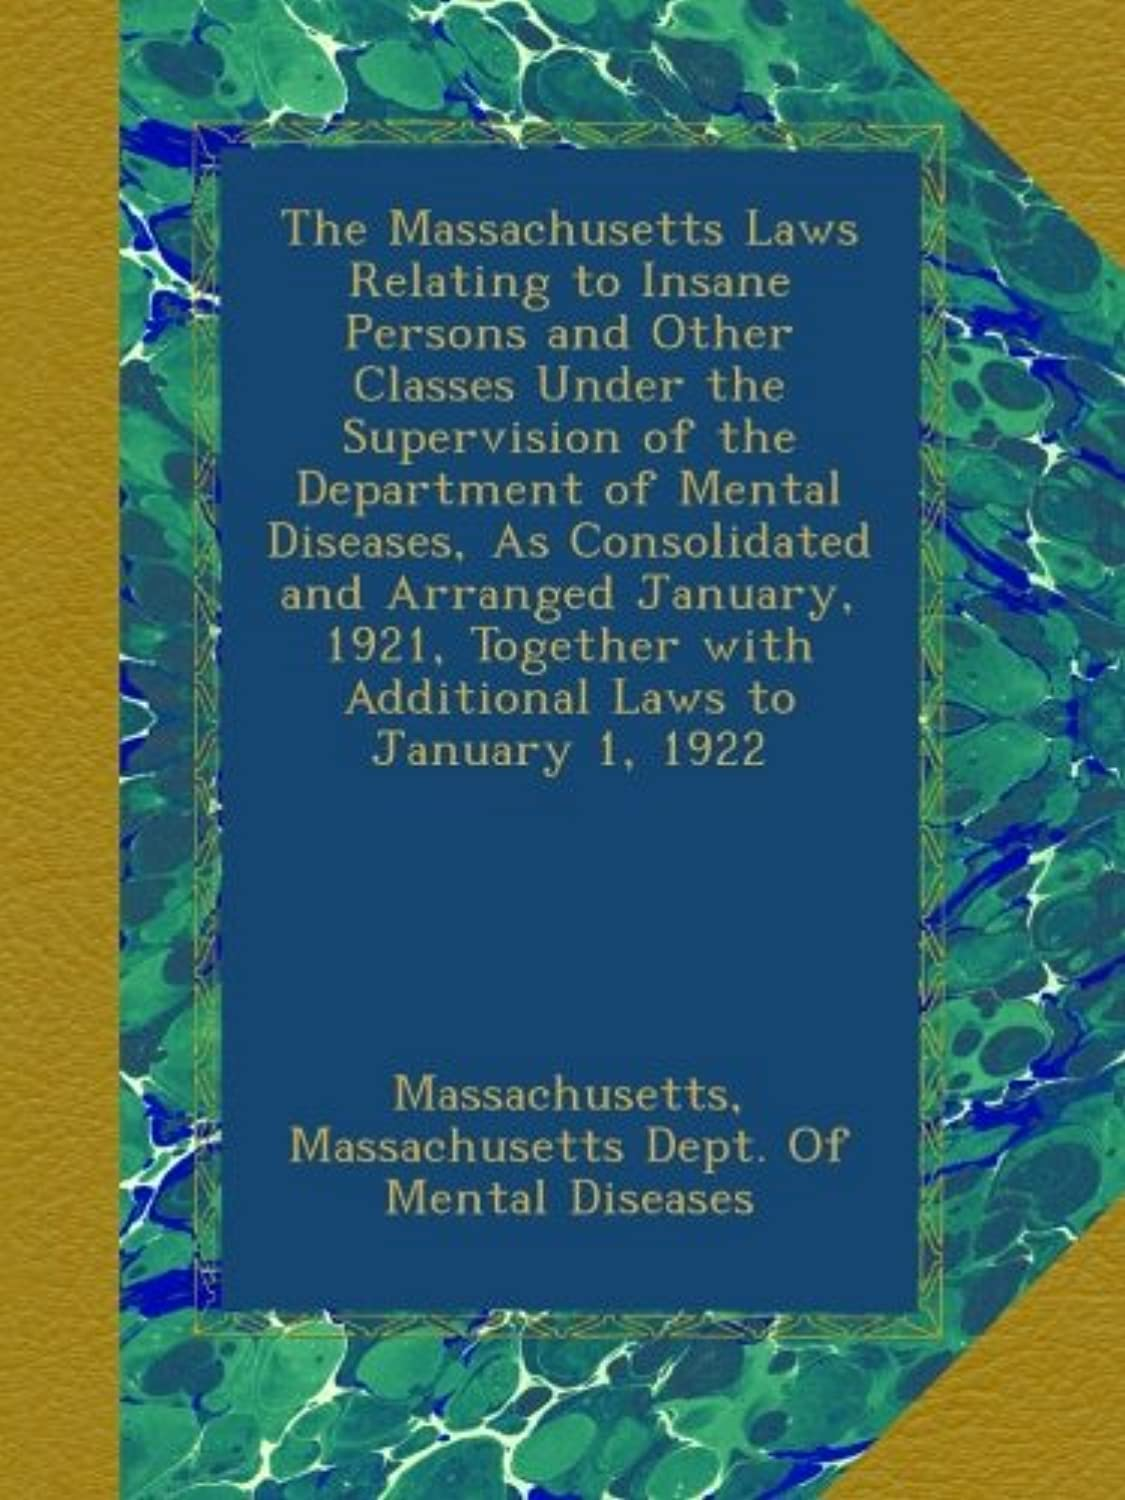 The Massachusetts Laws Relating to Insane Persons and Other Classes Under the Supervision of the Department of Mental Diseases, As Consolidated and Arranged January, 1921, Together with Additional Laws to January 1, 1922